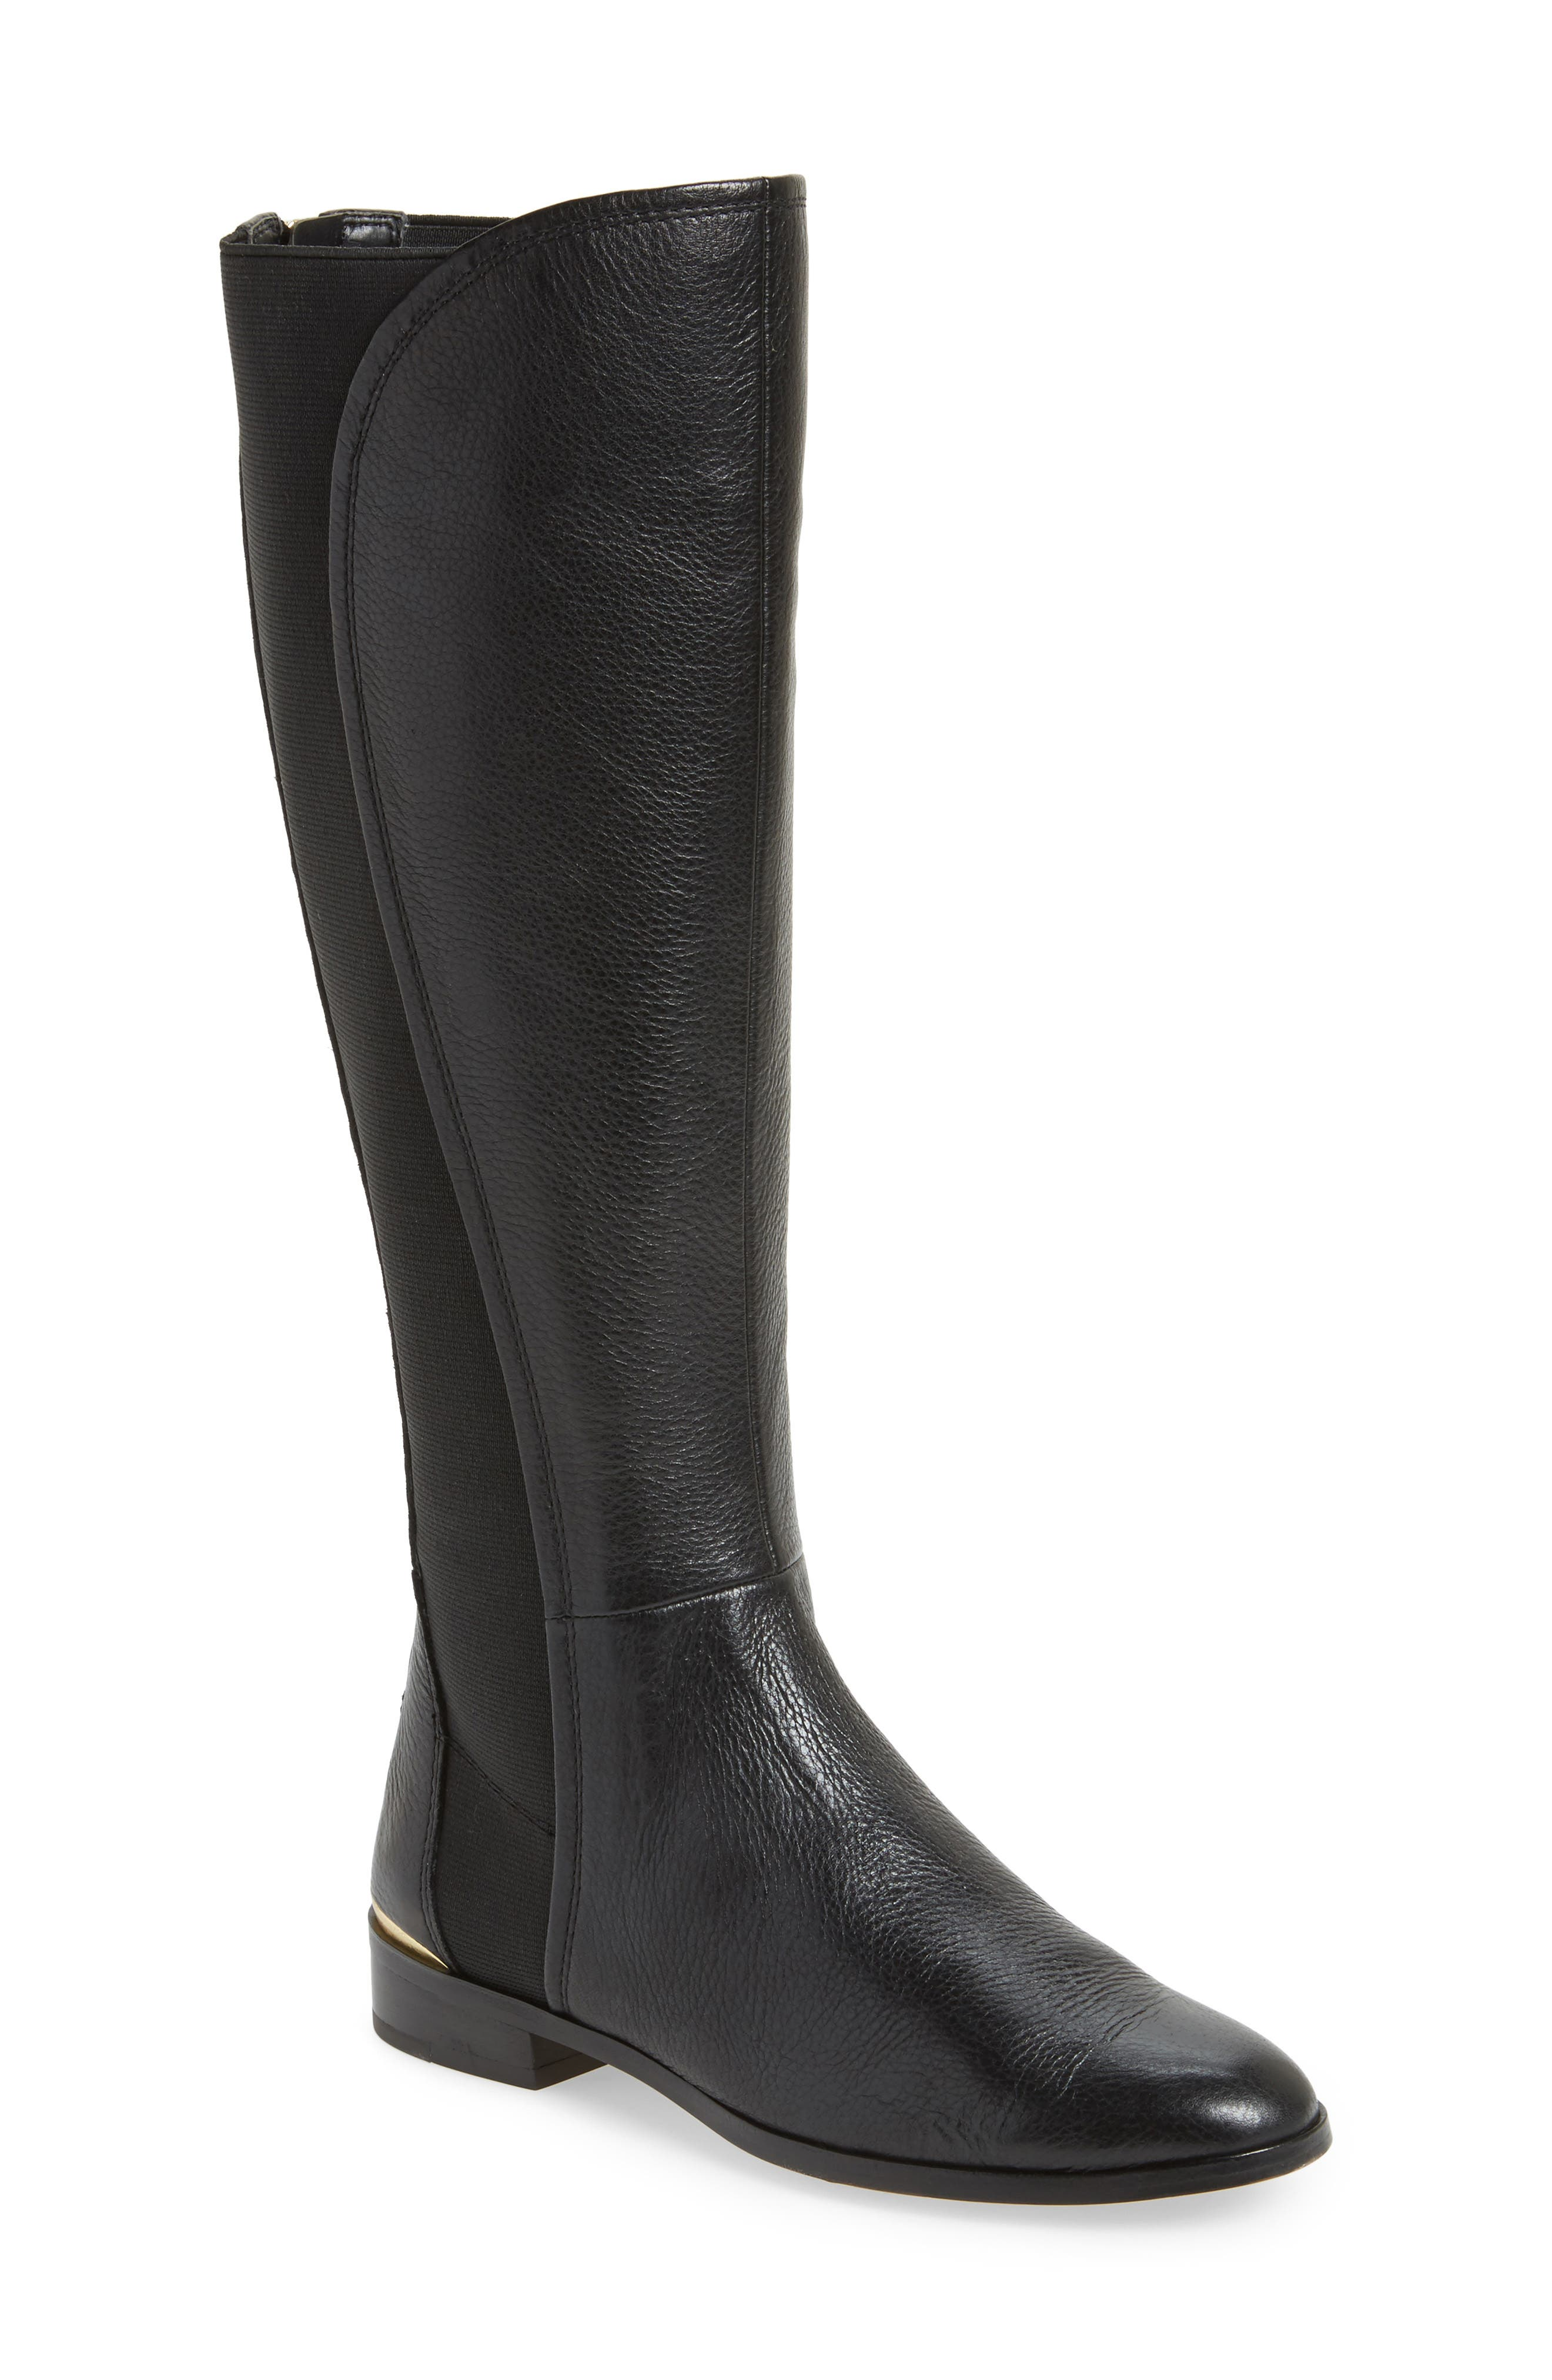 Louise et Cie Women's Vallery Elastic Back Knee High Boot pwpjpB4